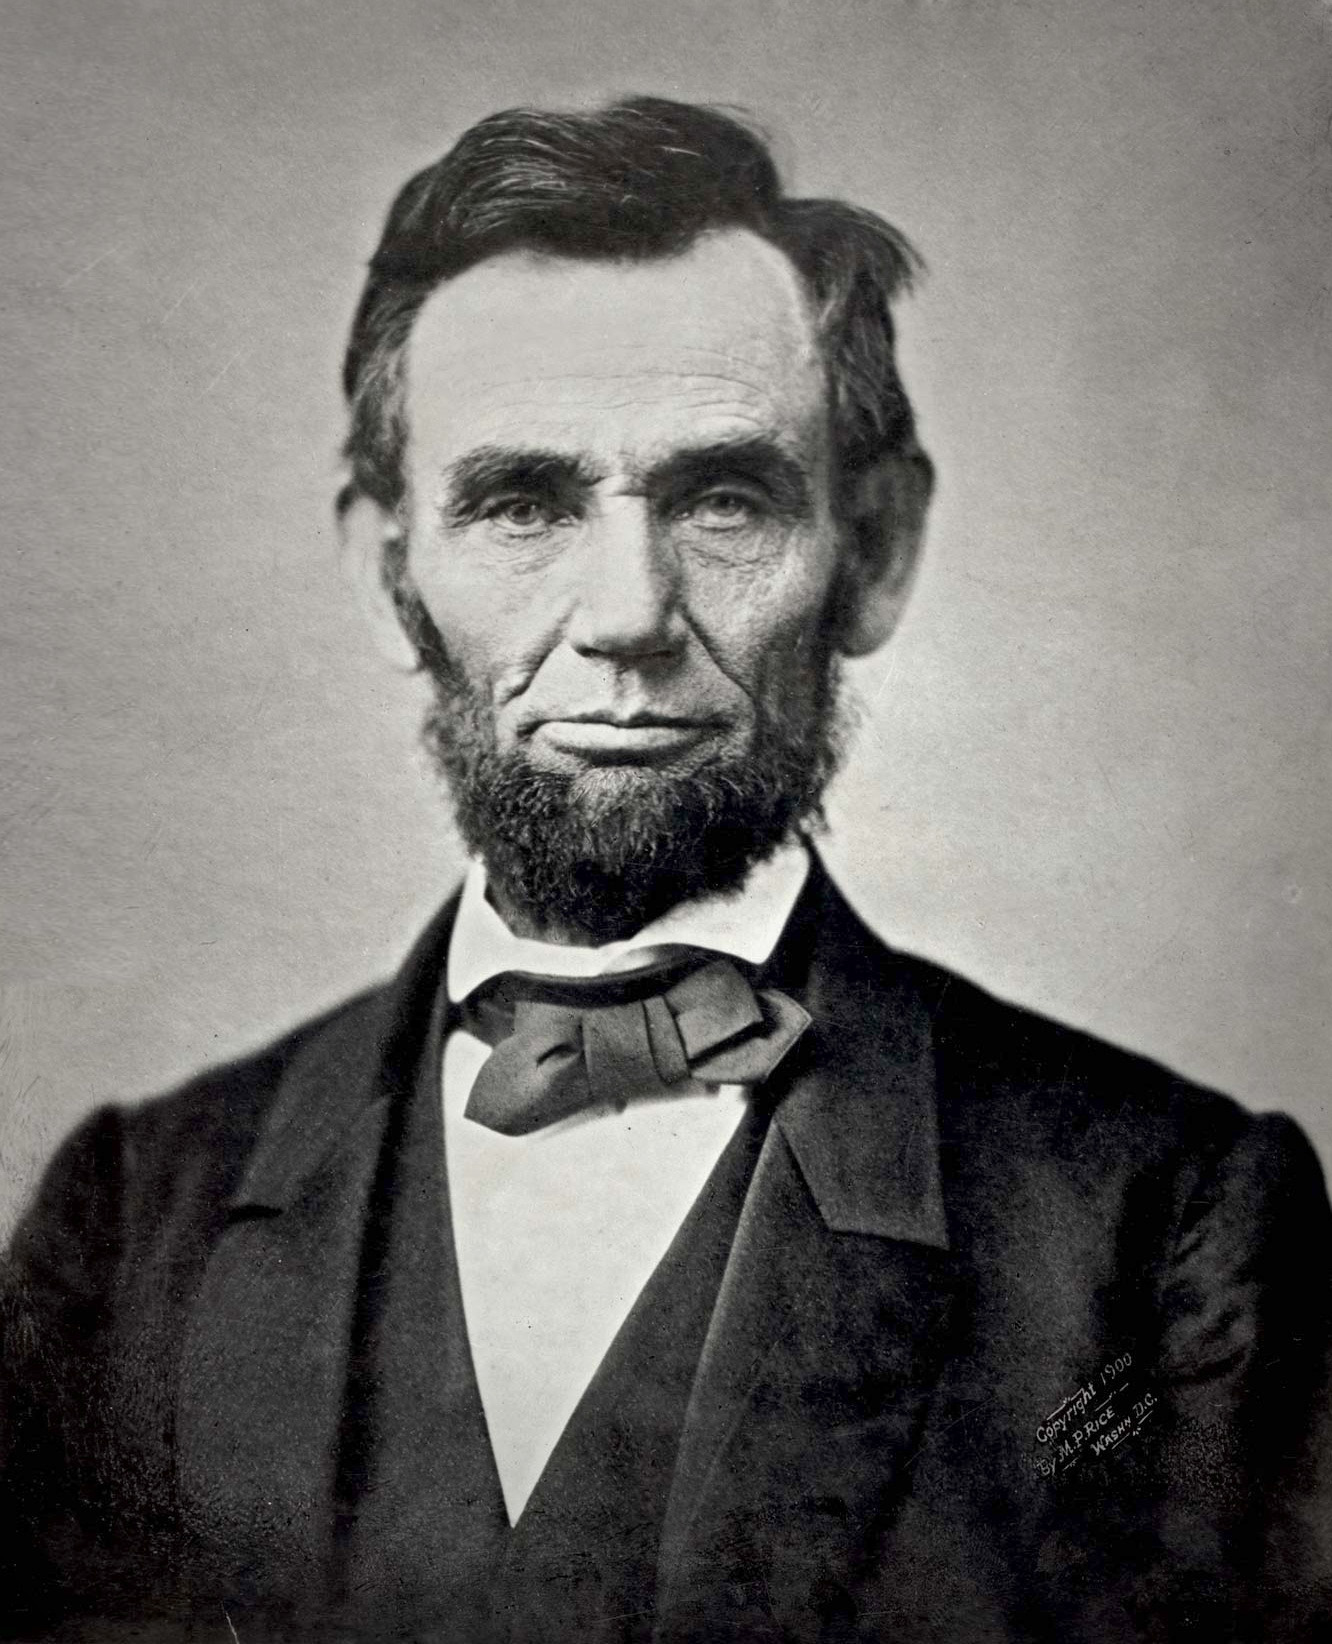 """I expect to maintain this contest until successful, or till I die, or am conquered, or my term expires, or Congress or the country forsakes me...""          - Abe Lincoln's letter to William Seward, June 28, 1862."